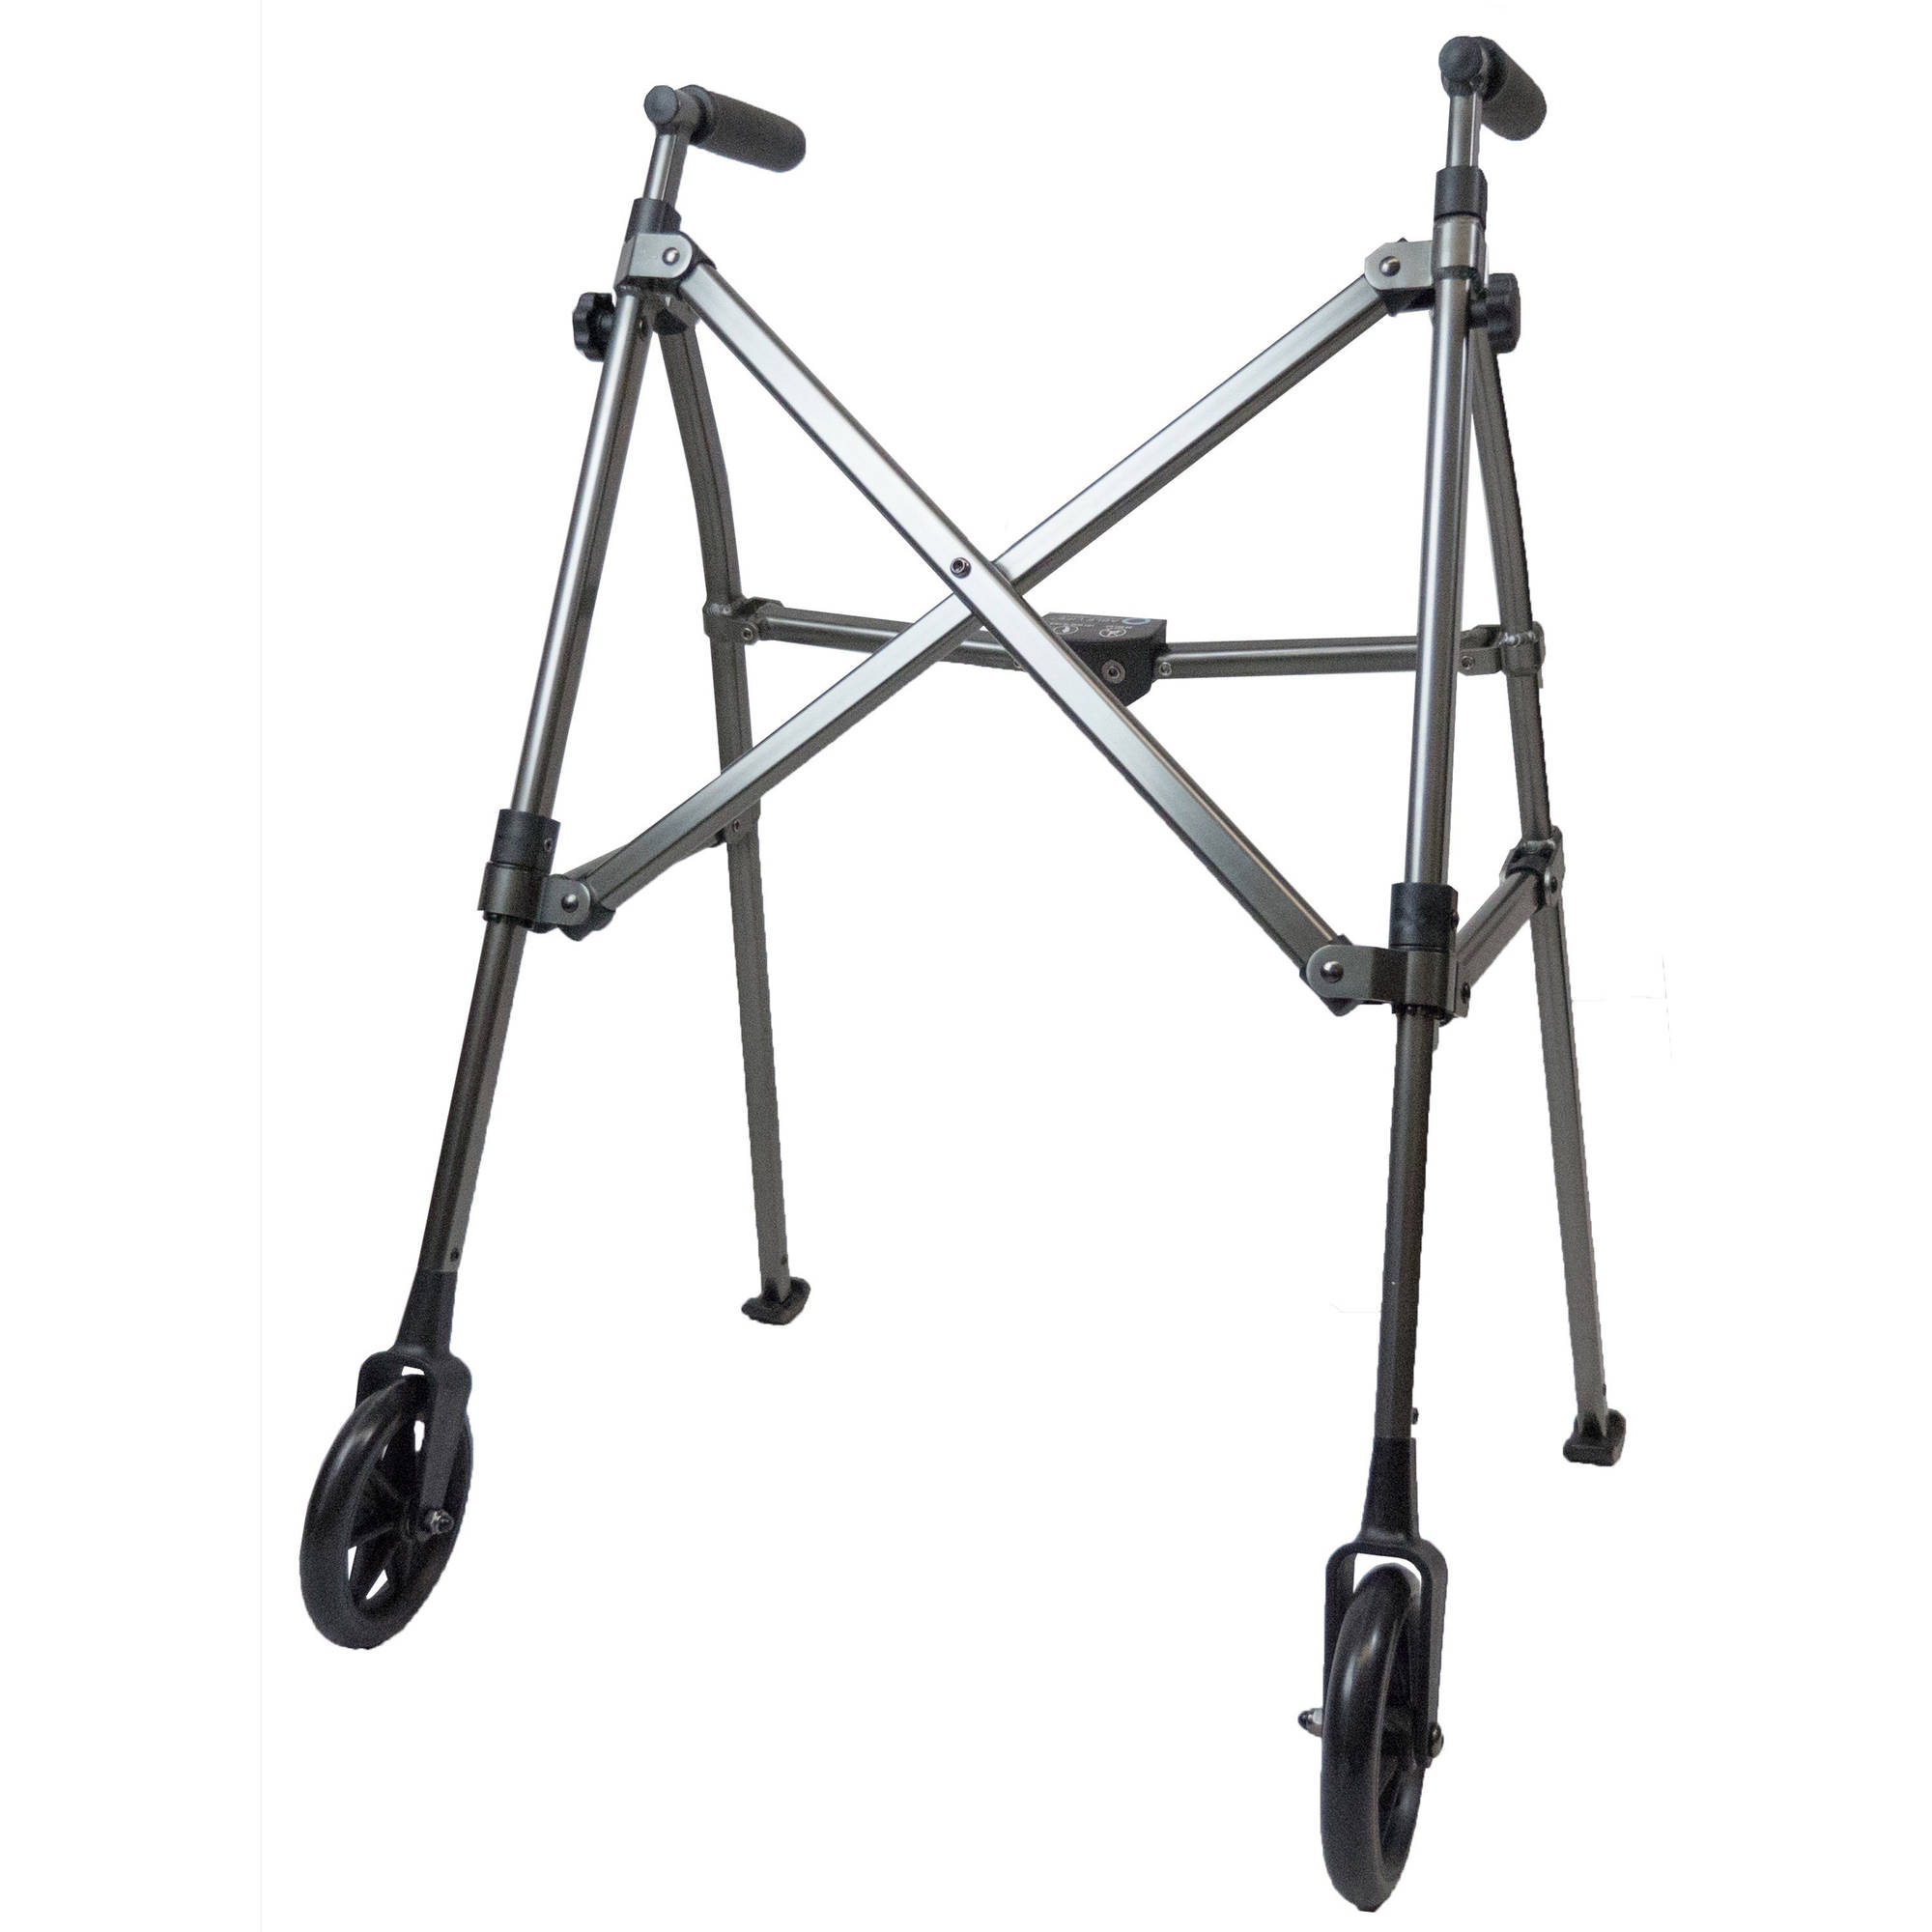 "Able Life Space Saver Walker - Black Walnut, Folding Travel Walker with 6"" wheels + Bariatric frame supports 400 lbs"